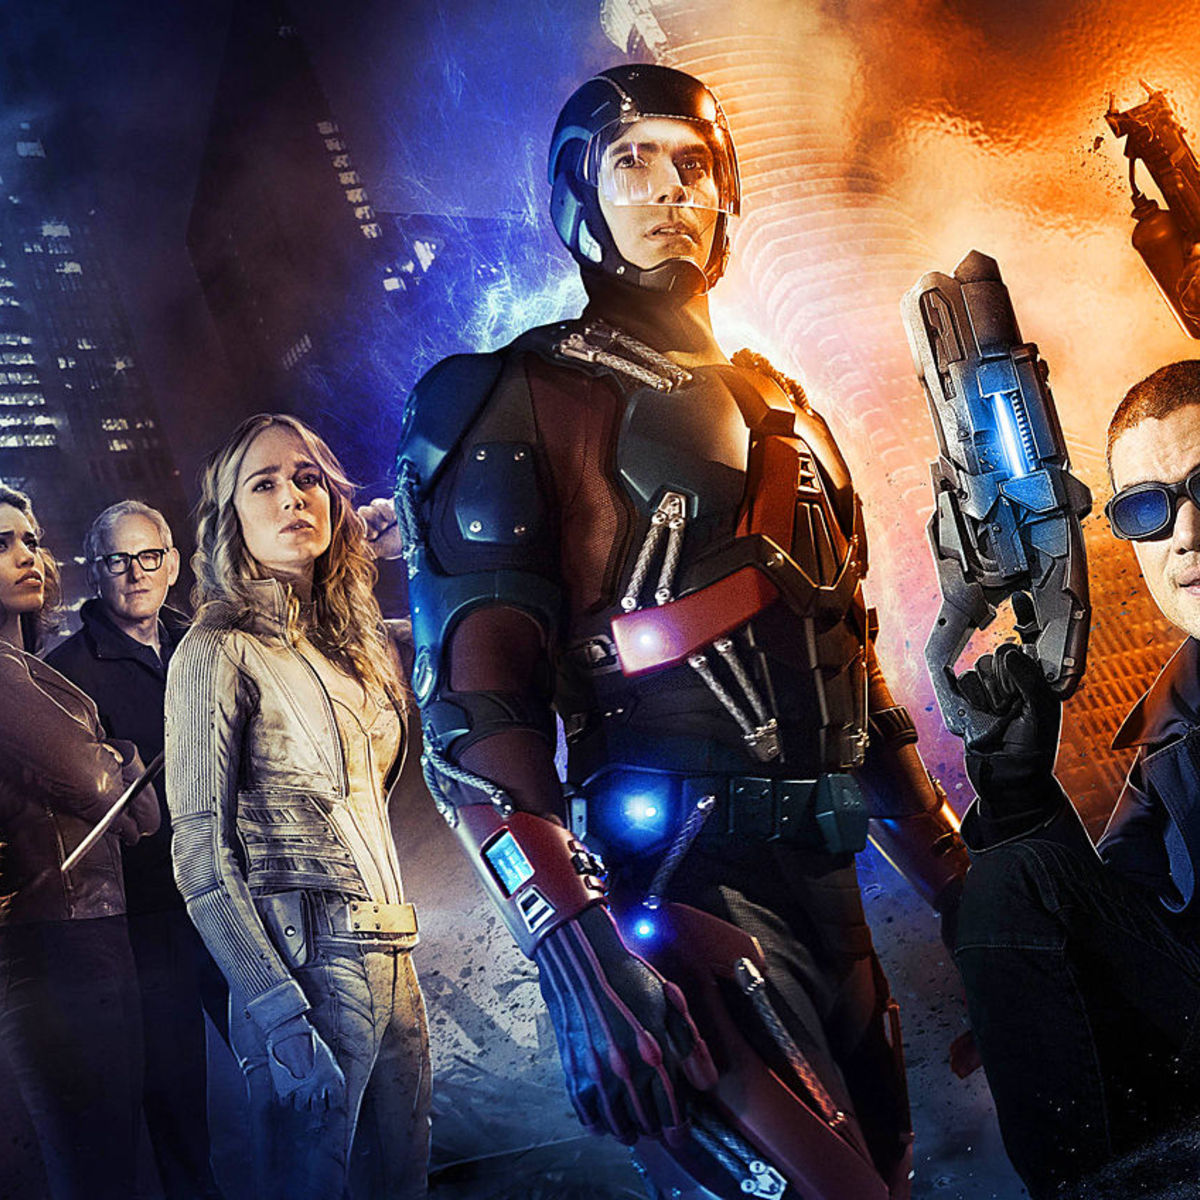 Legends-of-Tomorrow-Promo-Image-DC-CW-2016_0.jpg